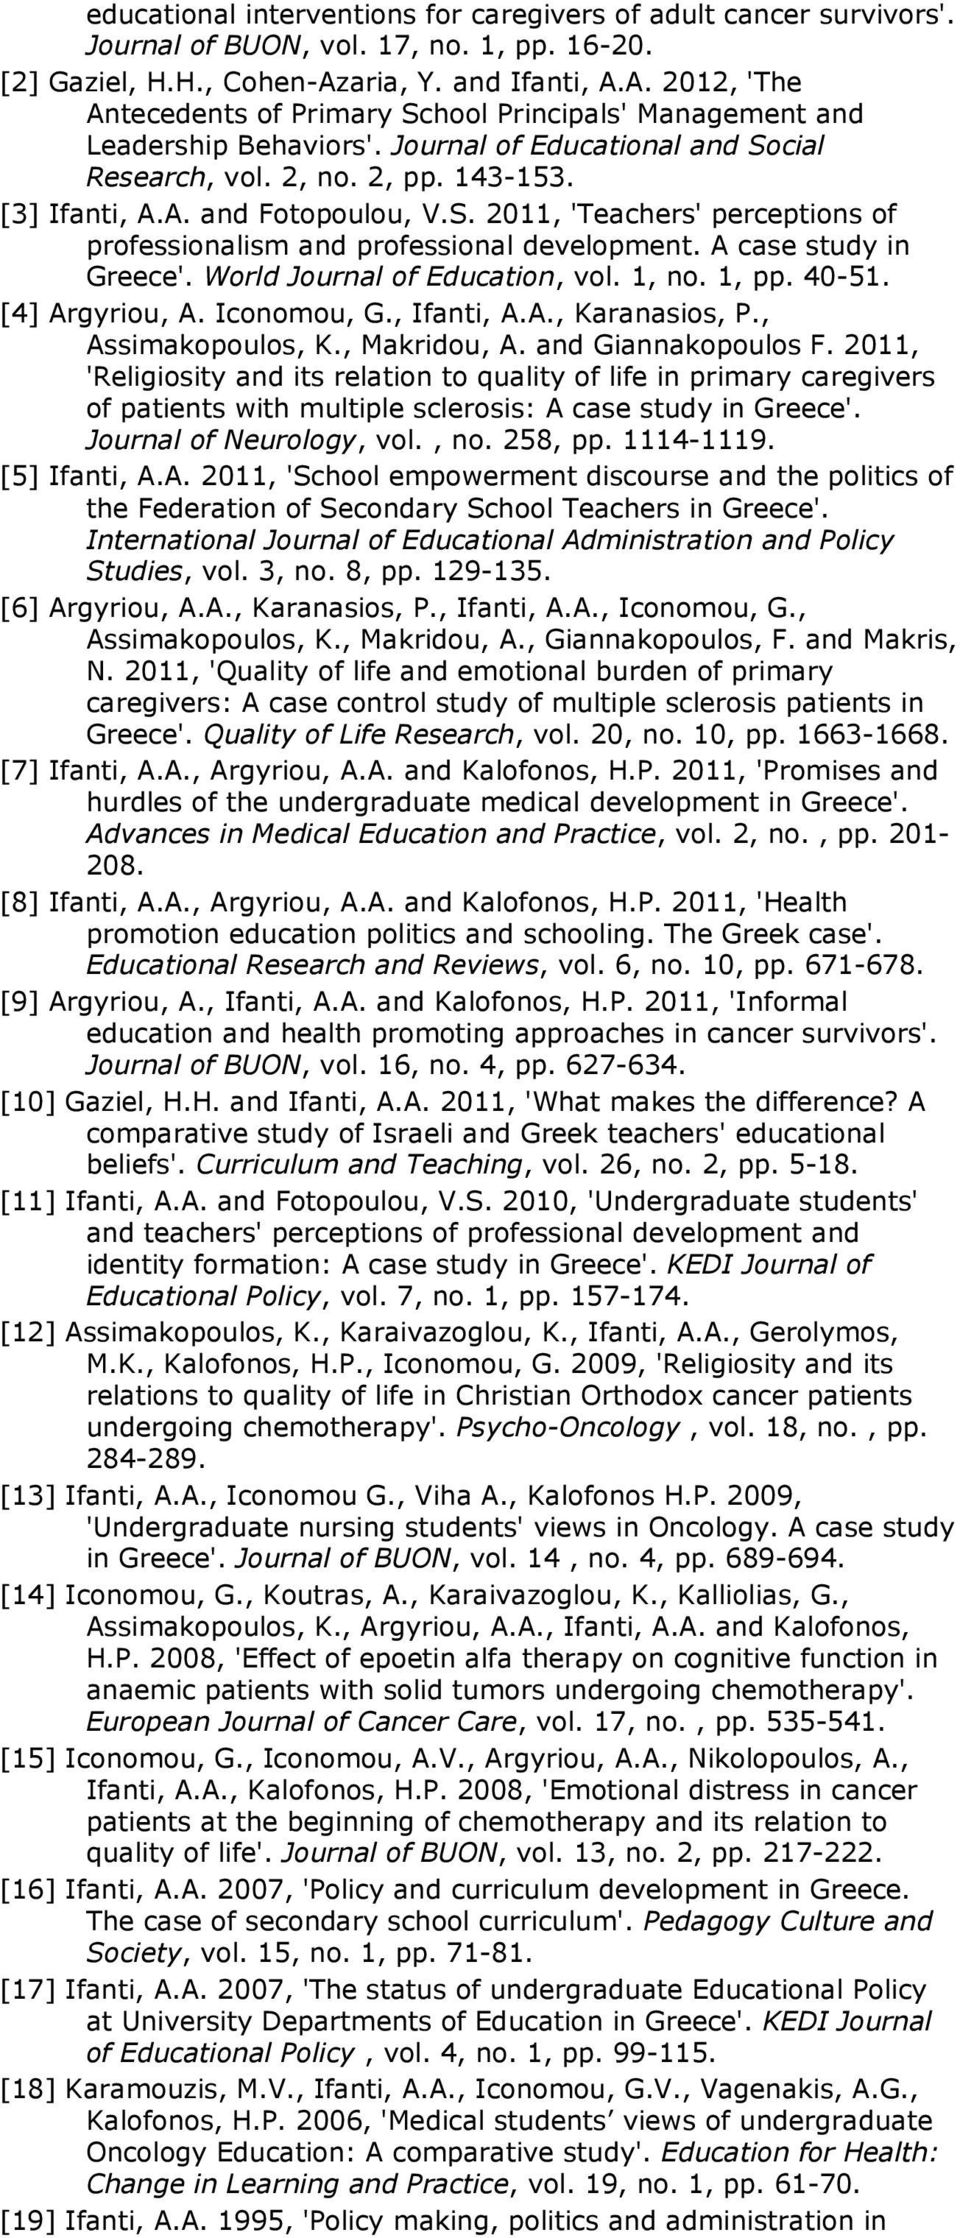 [3] Ifanti, A.A. and Fotopoulou, V.S. 2011, 'Teachers' perceptions of professionalism and professional development. A case study in Greece'. World Journal of Education, vol. 1, no. 1, pp. 40-51.